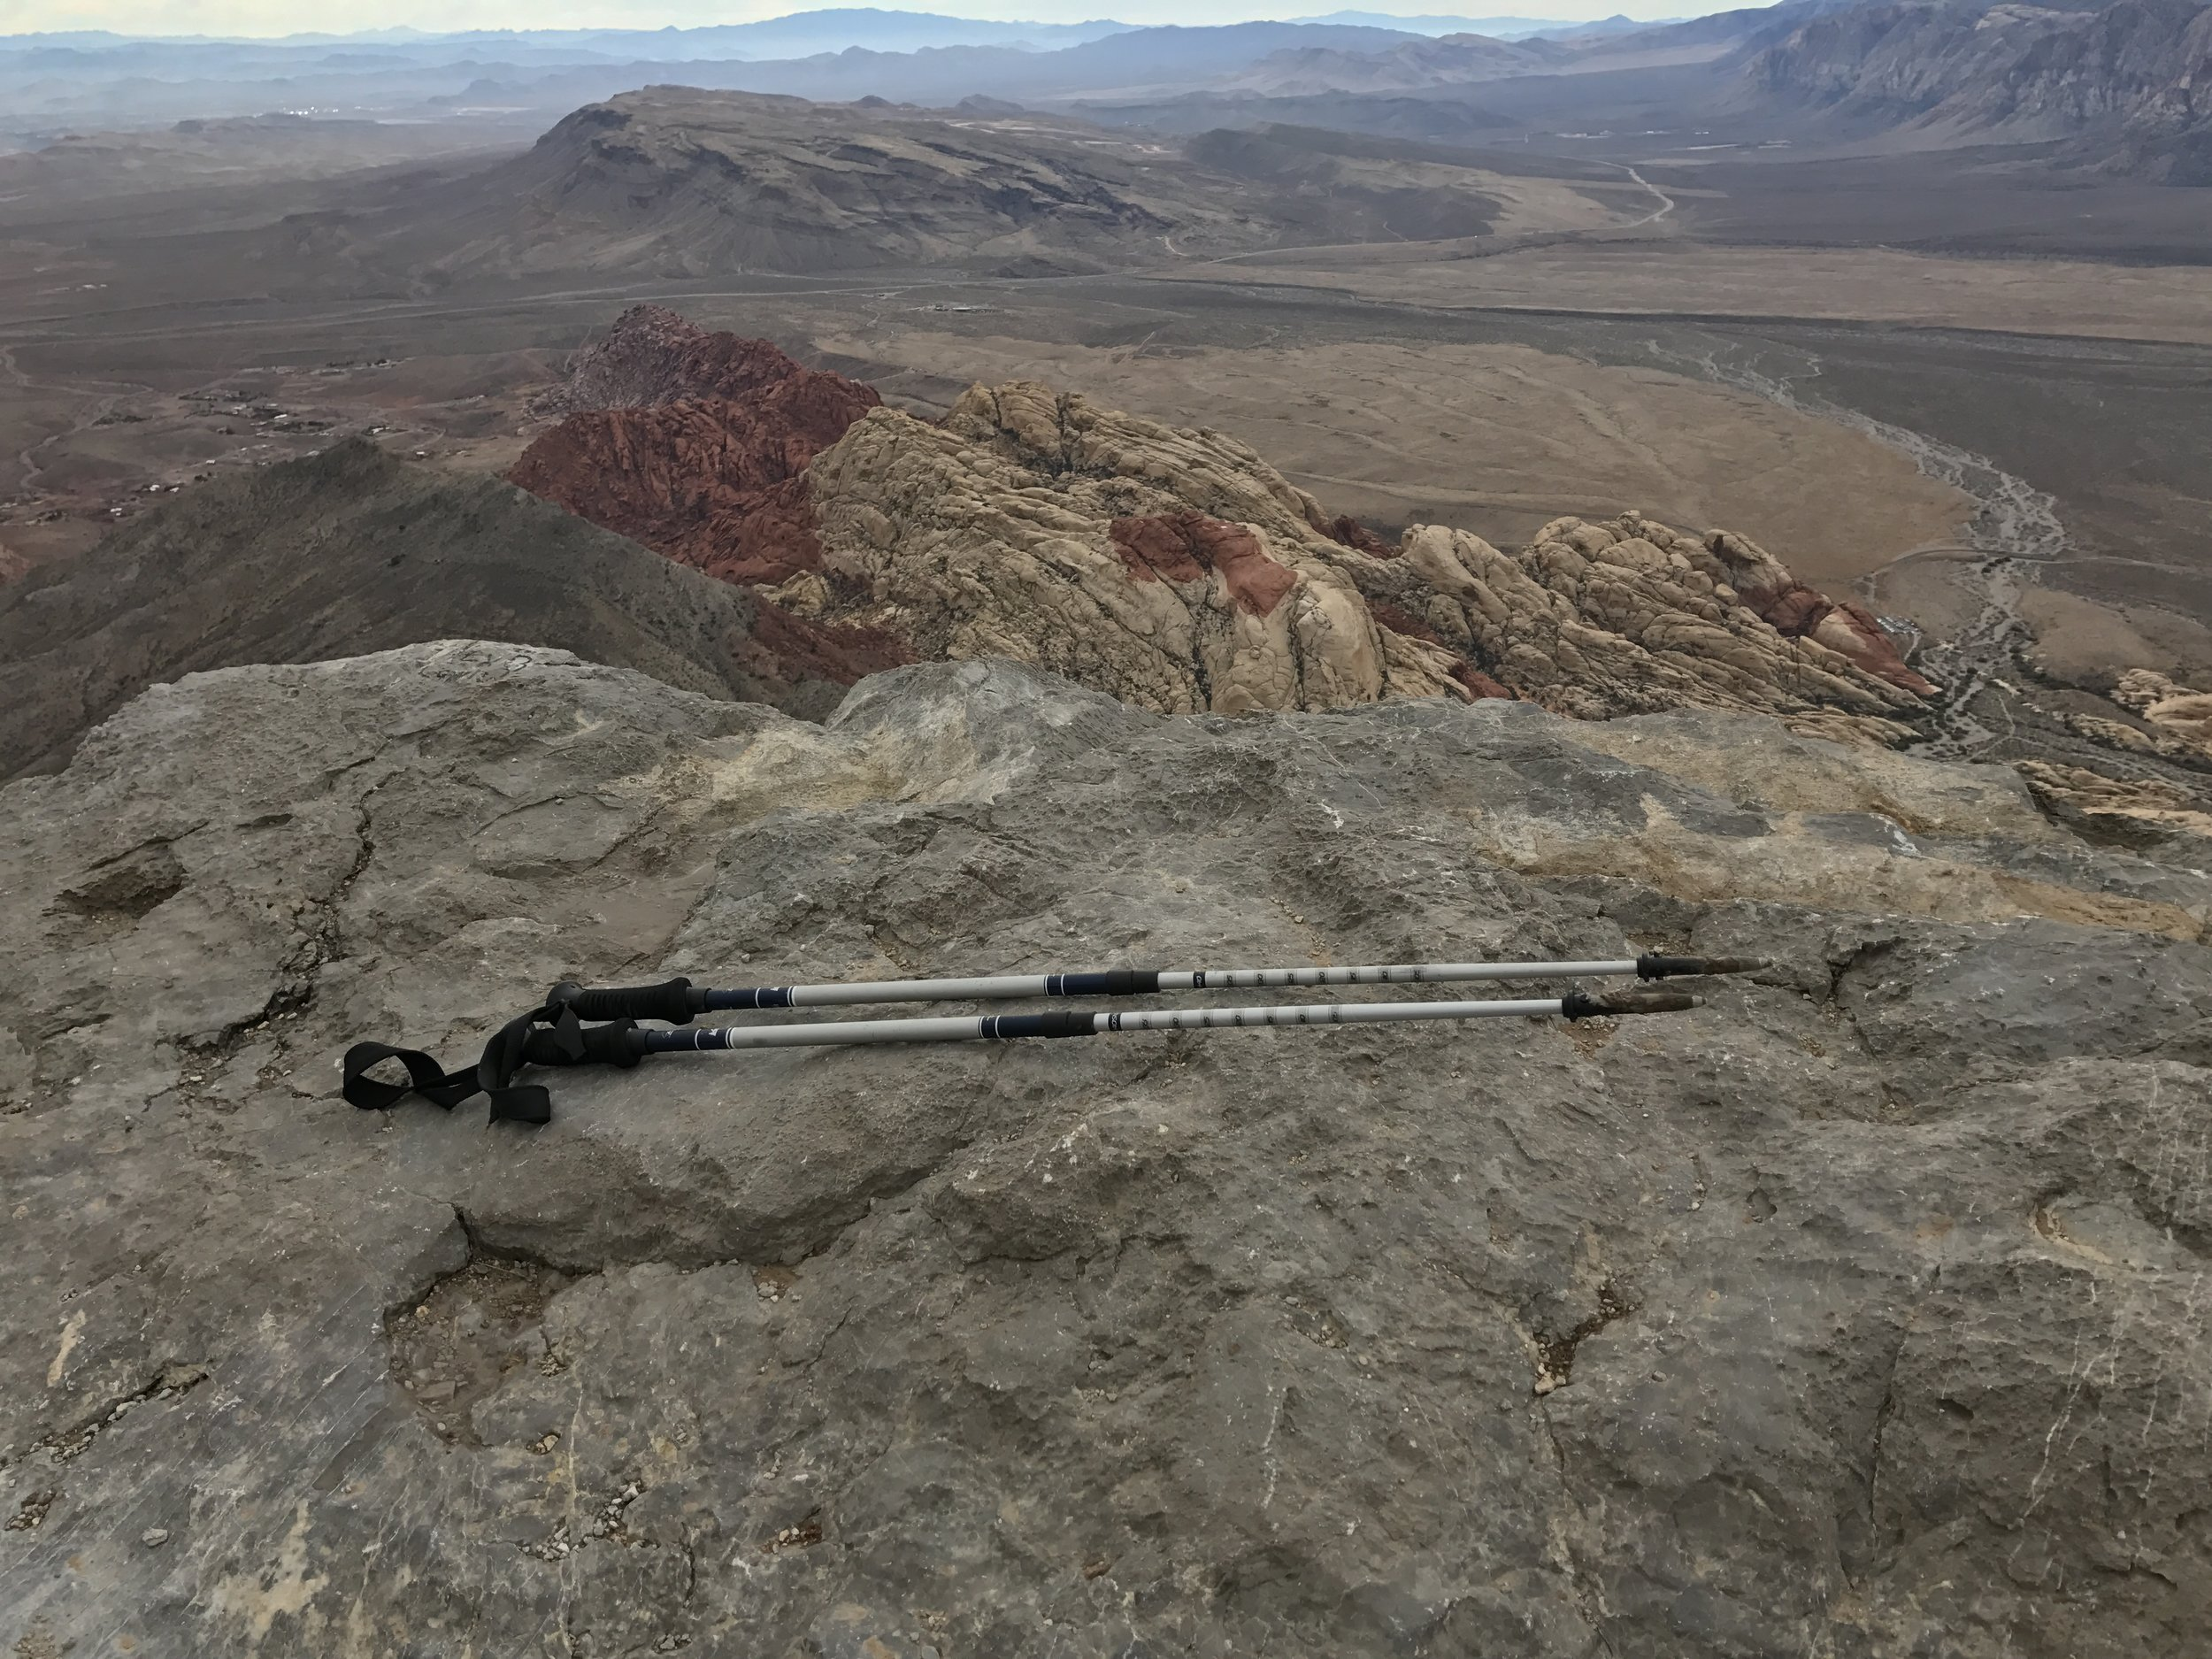 Hiking poles recommended for hiking Turtlehead Peak, North Peak, and Bridge Mountain in Red Rock!